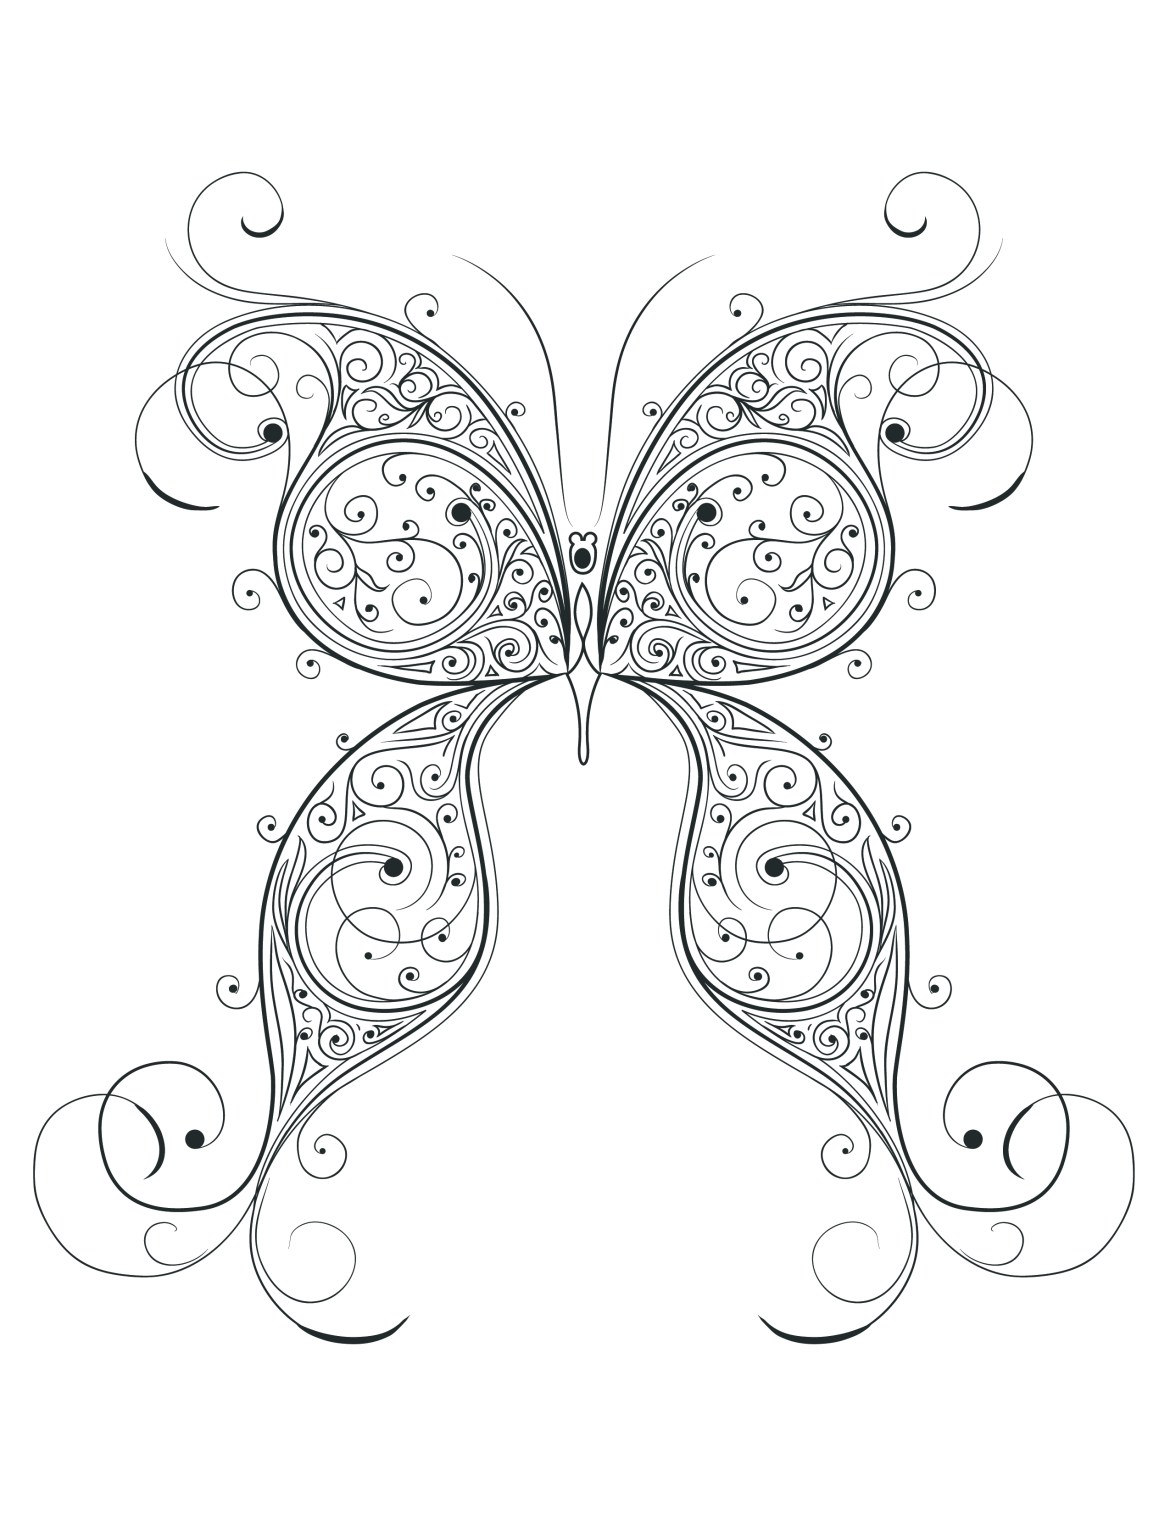 Coloriage Gratuit Nature.Coloriage De La Nature Papillon Doodle Difficile Artherapie Ca